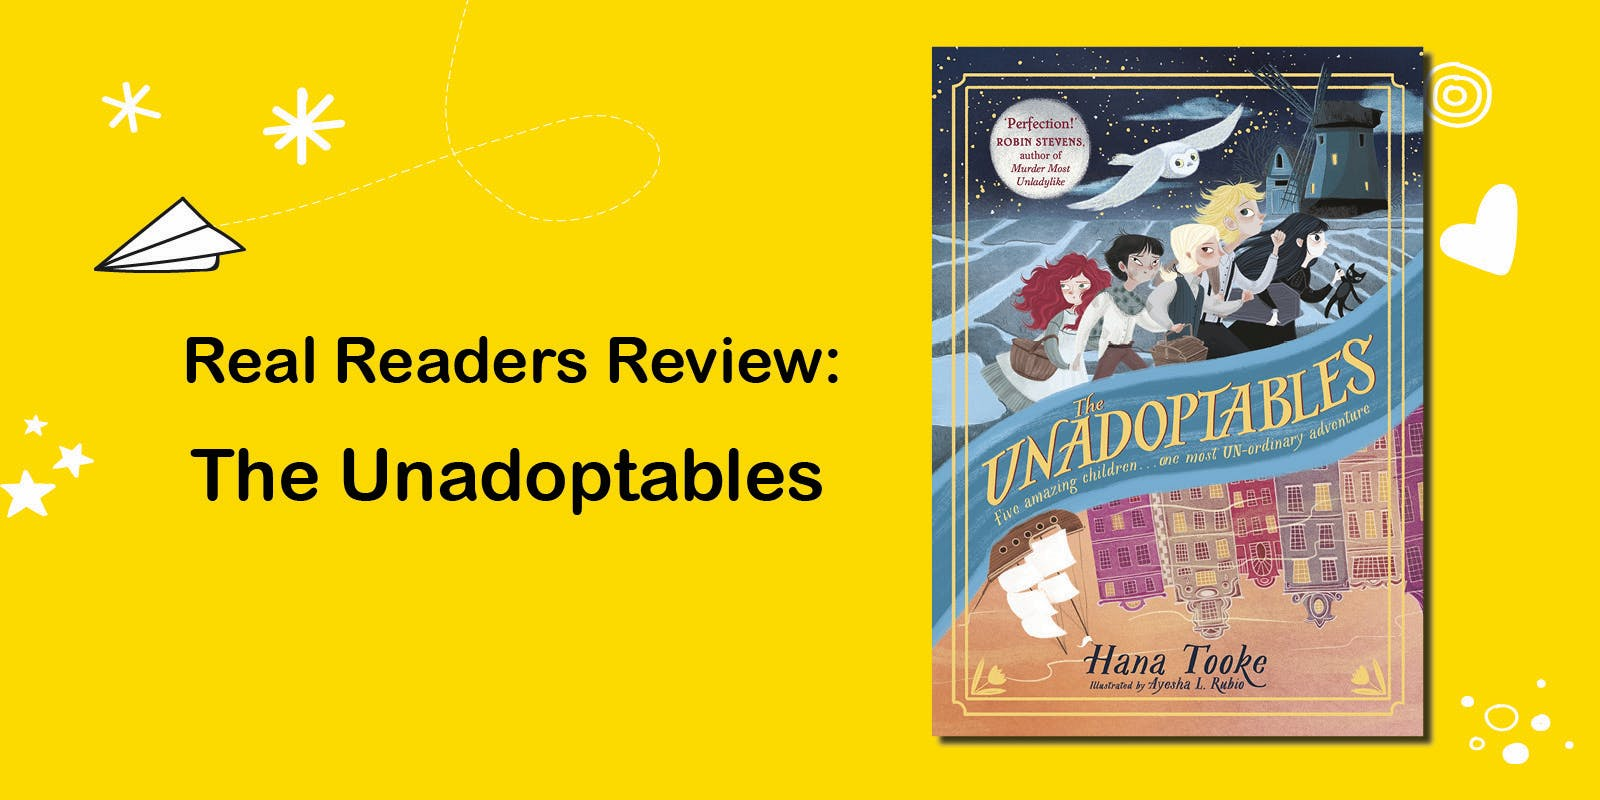 Real readers review: The Unadoptables